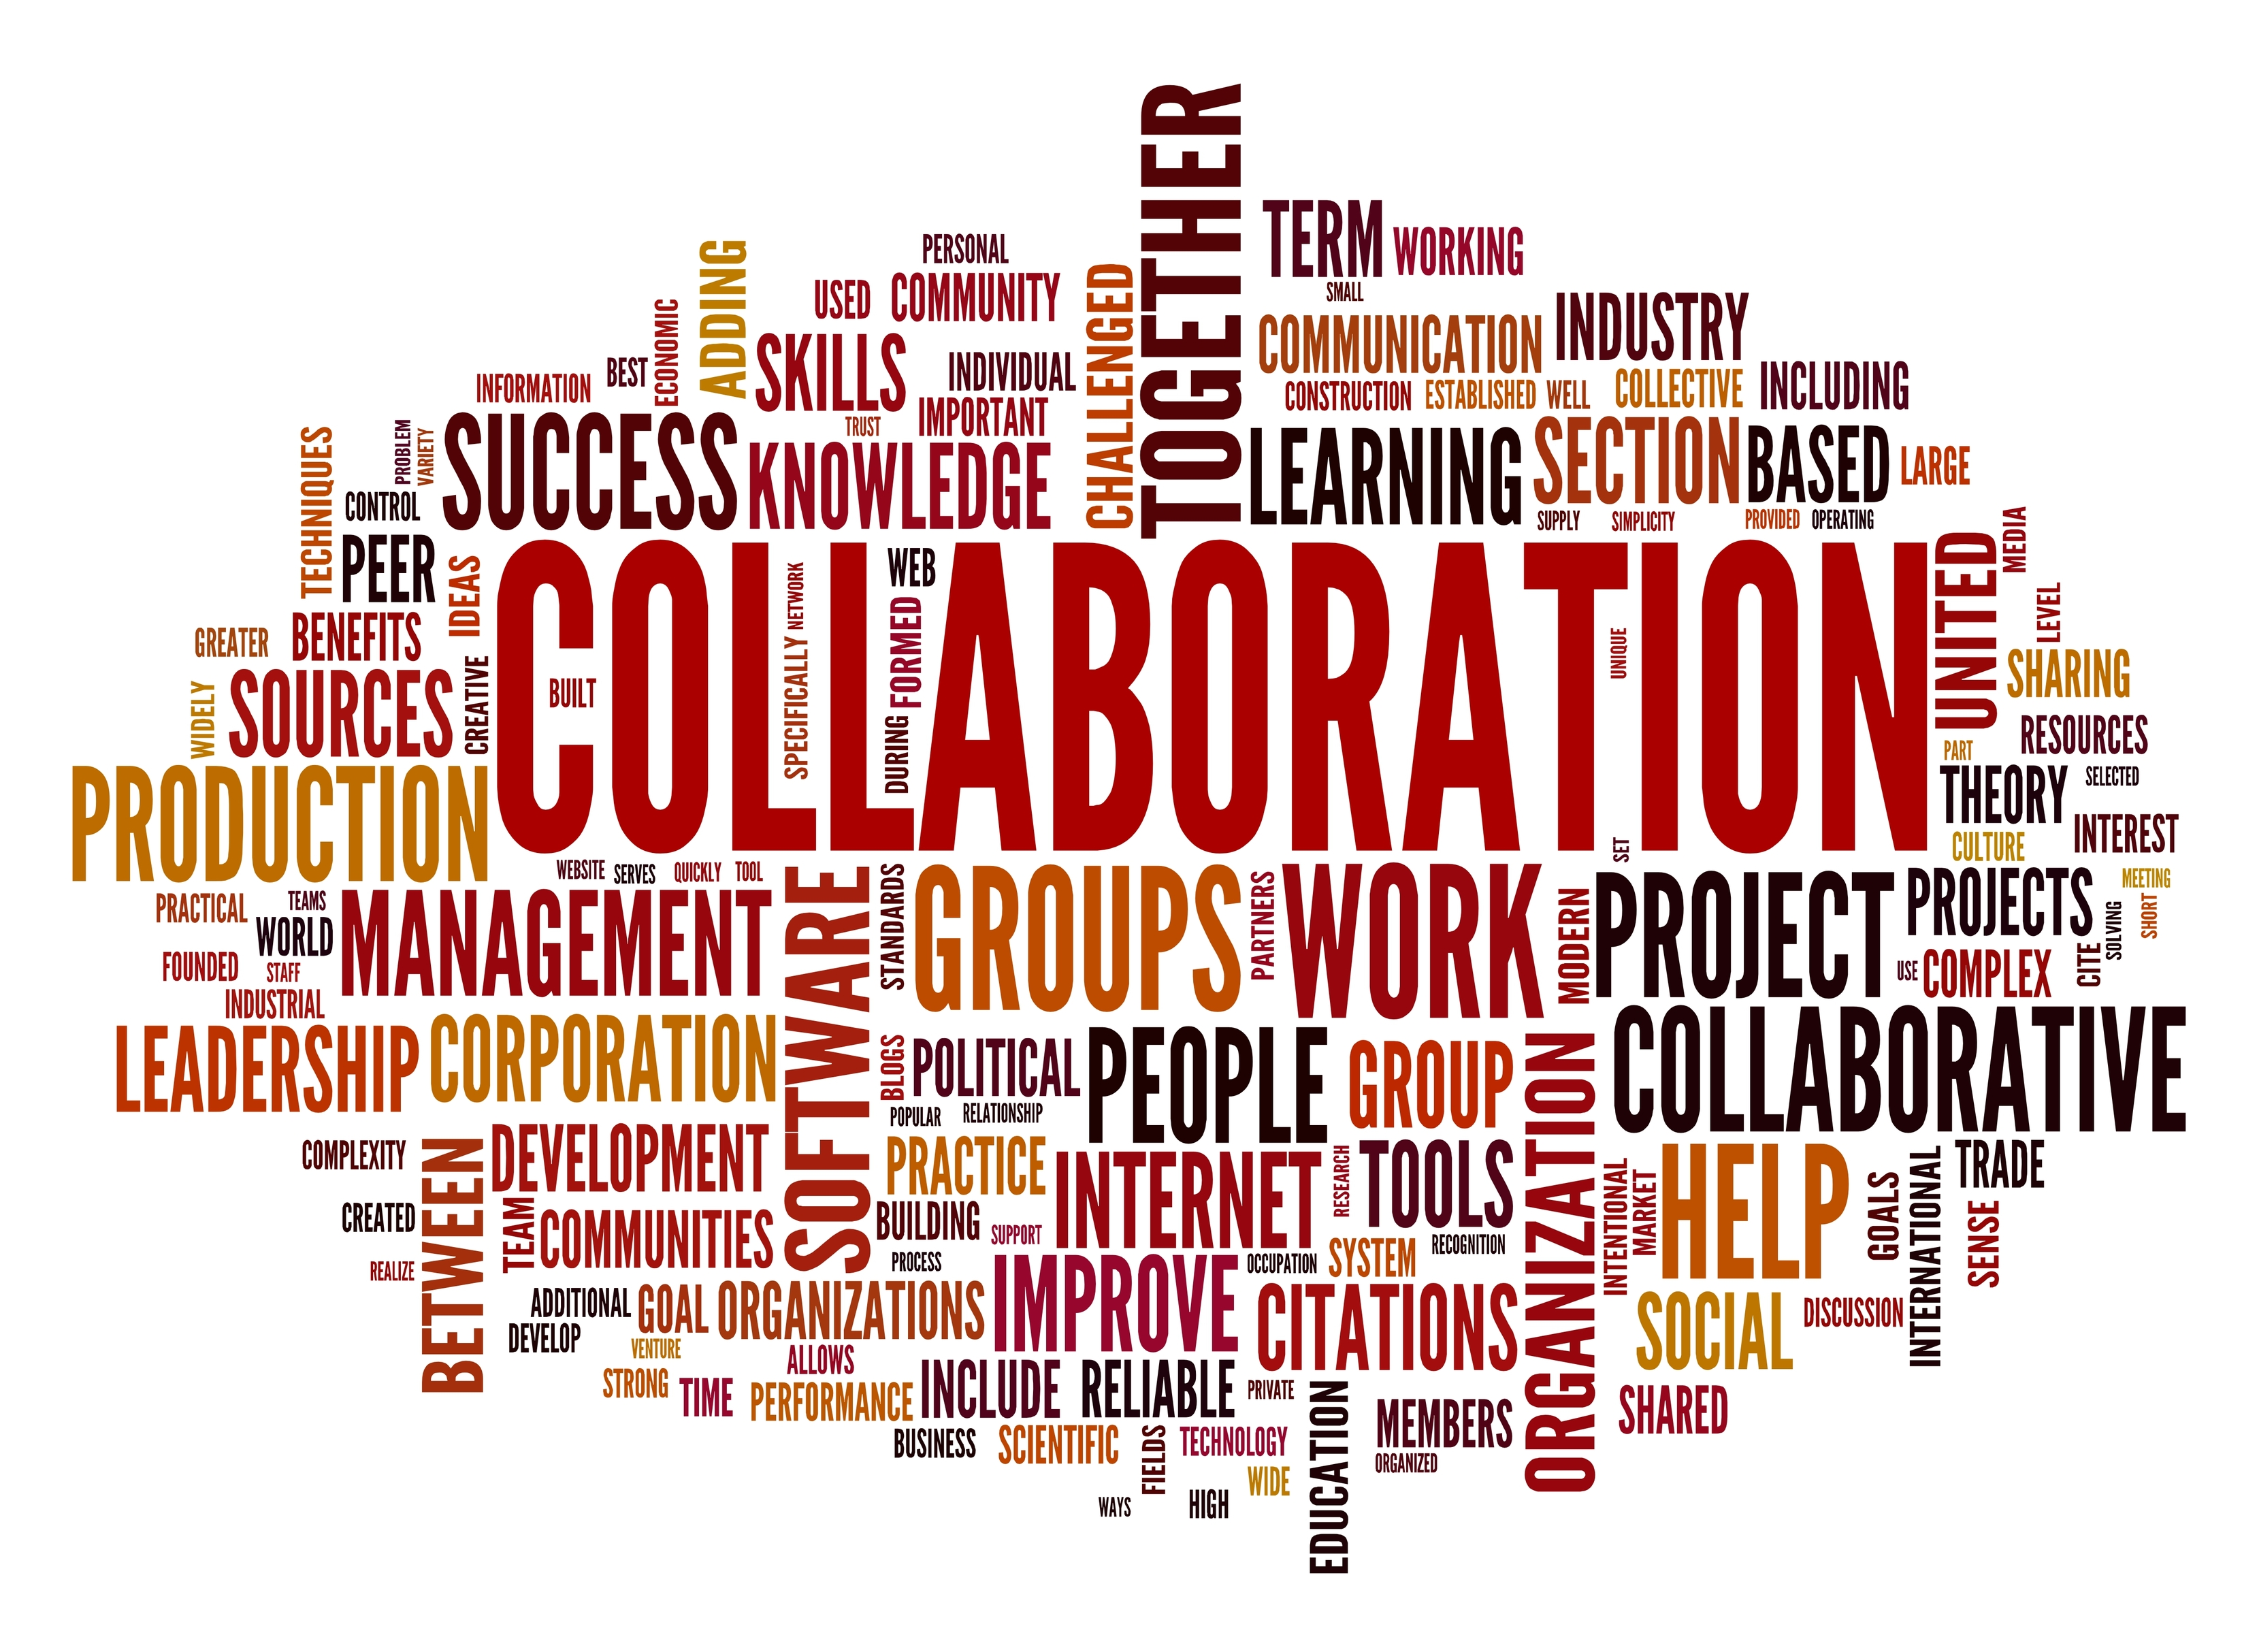 the importance of group work and collaboration to have a successful production Fostering teamwork is creating a work culture that values collaboration one small production organization held a weekly how to build a successful work team.